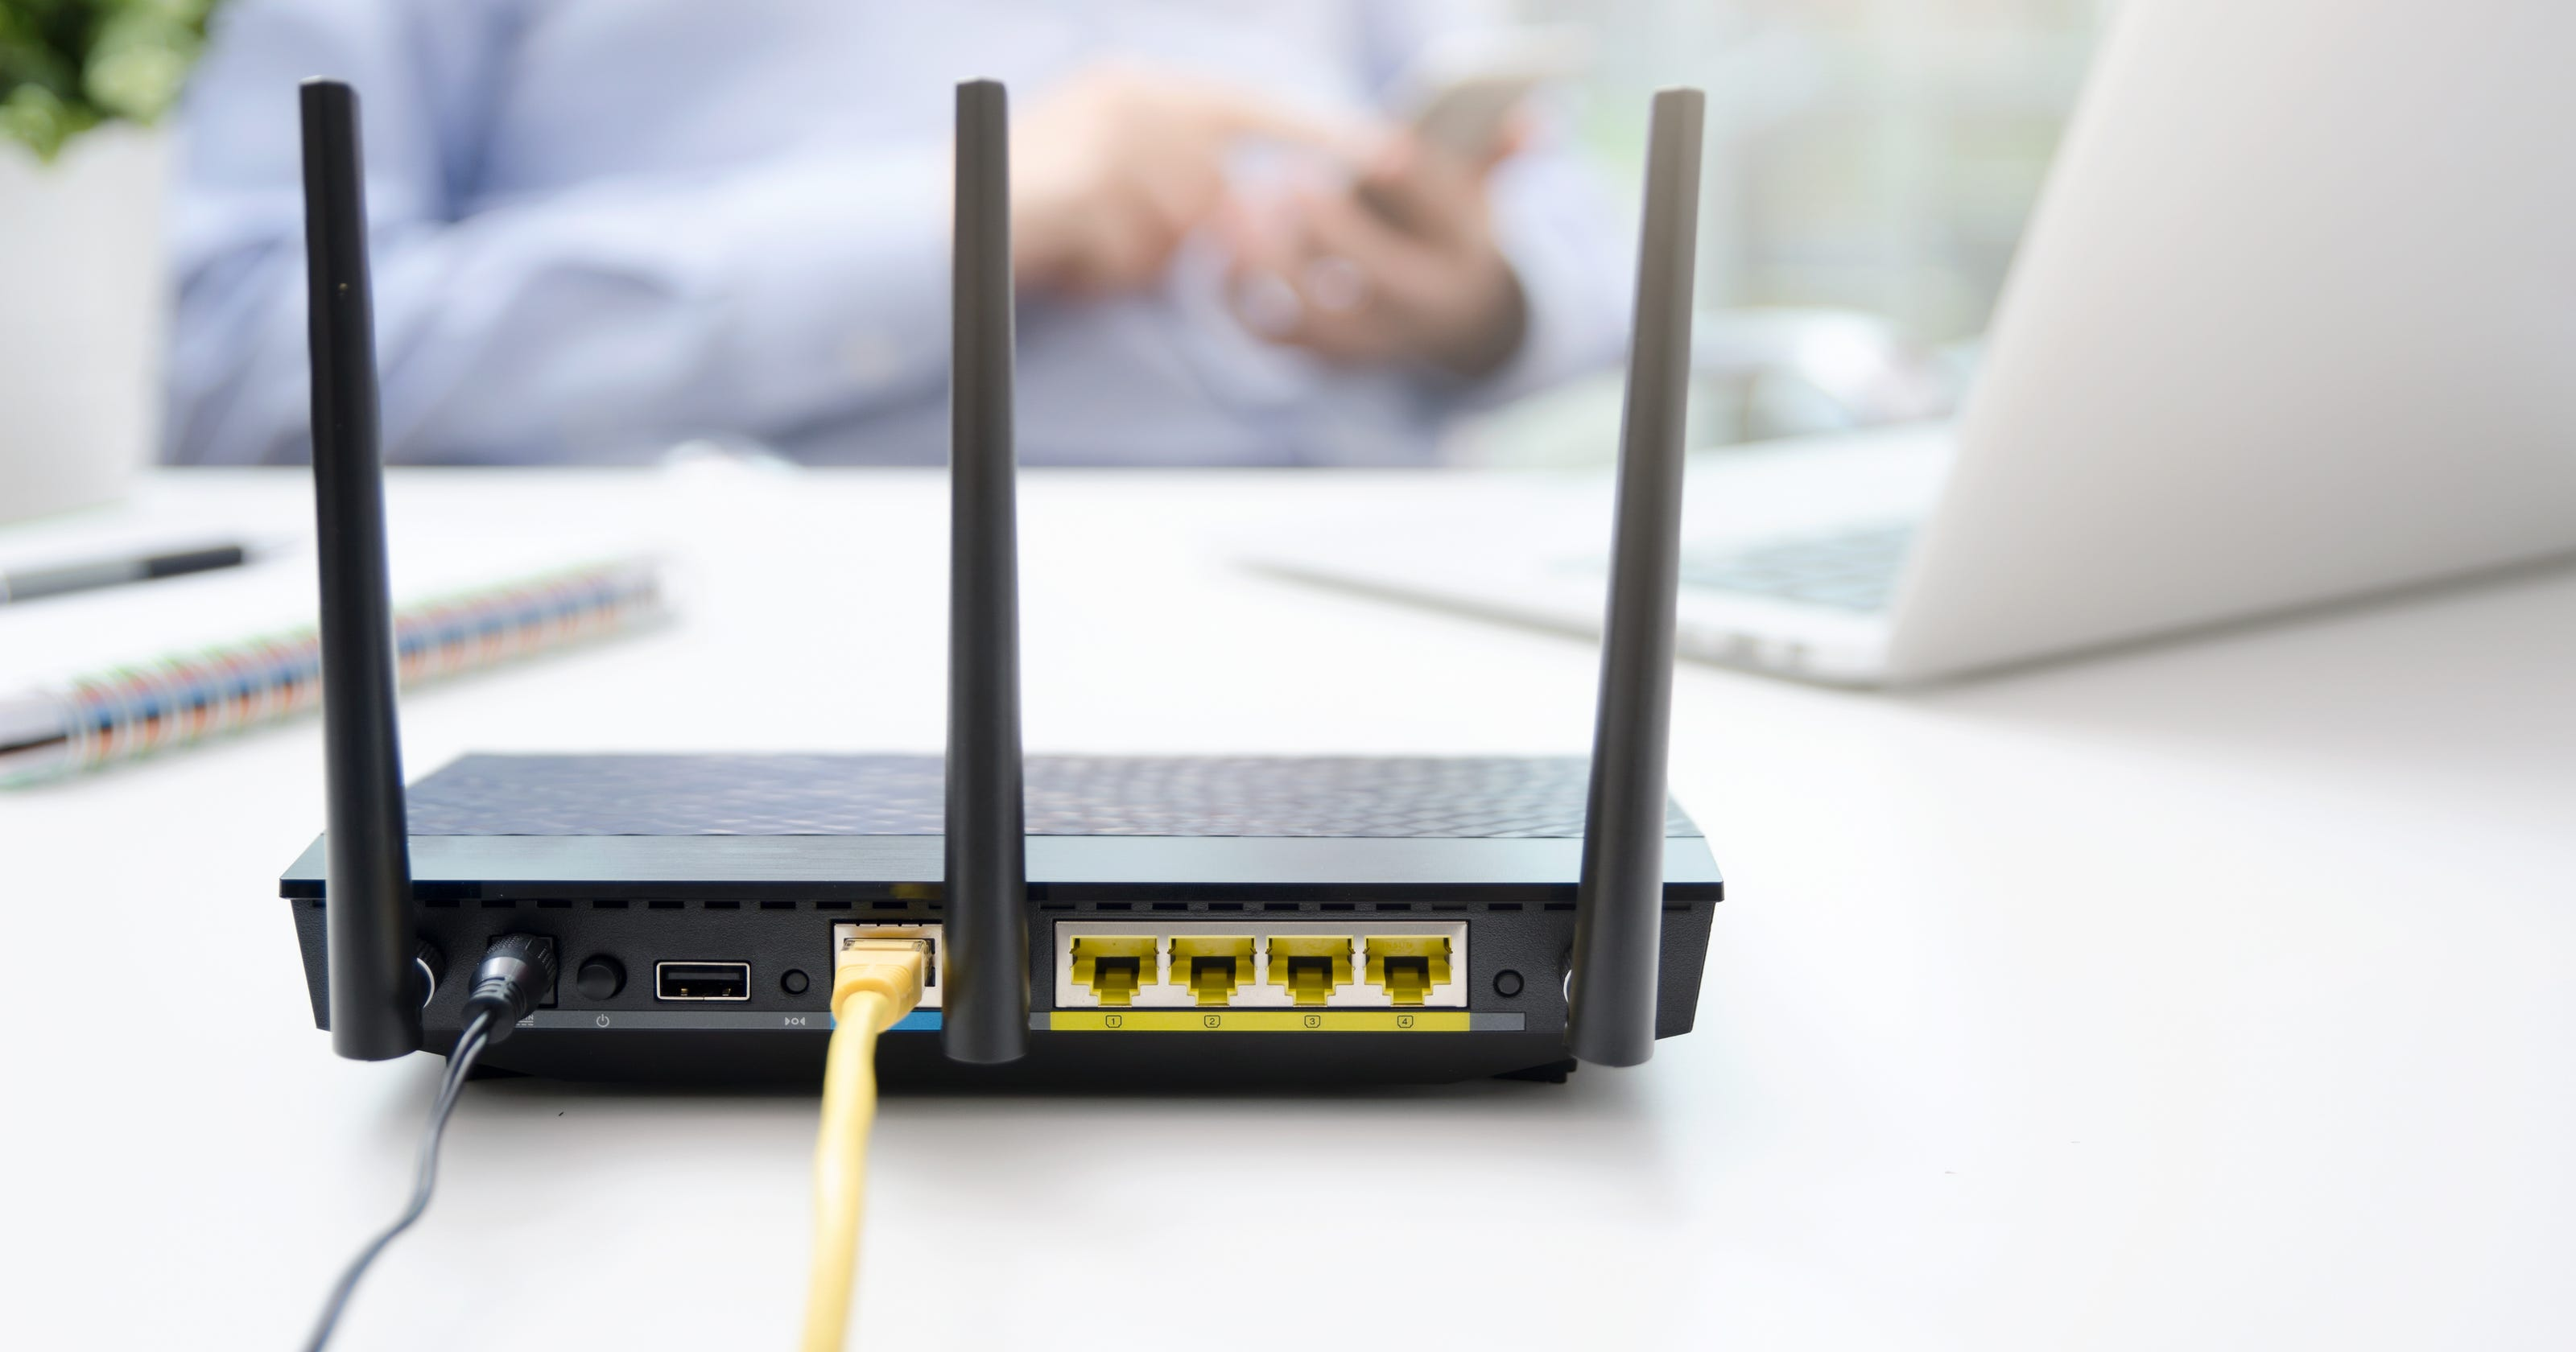 FBI asks Americans to reboot their routers to stop VPNFilter malware